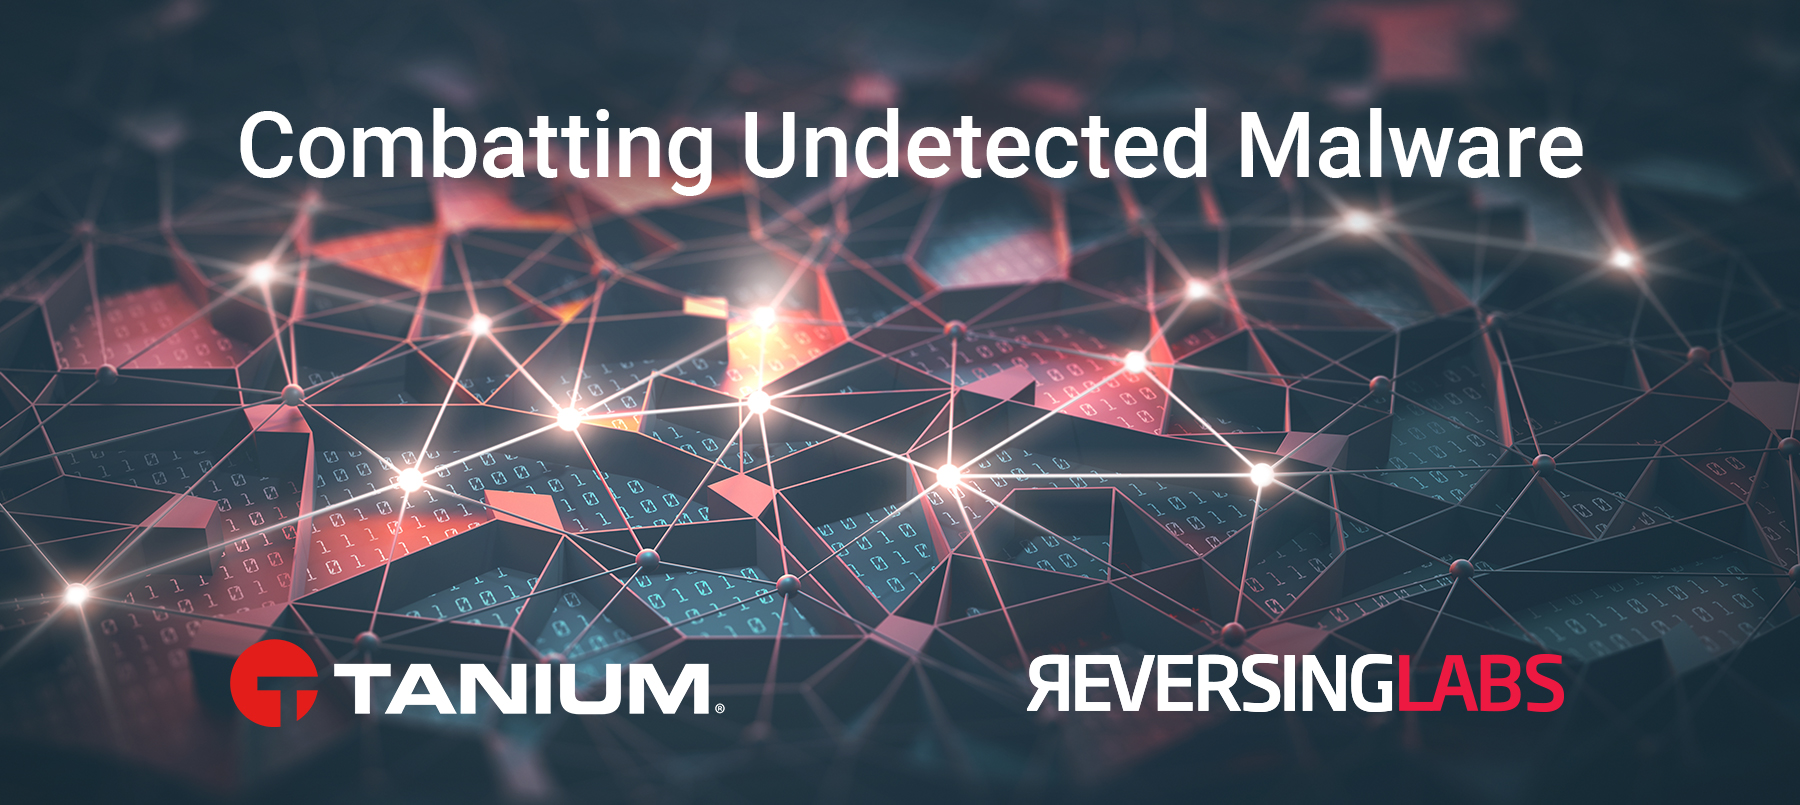 Combatting Undetected Malware with Tanium and ReversingLabs